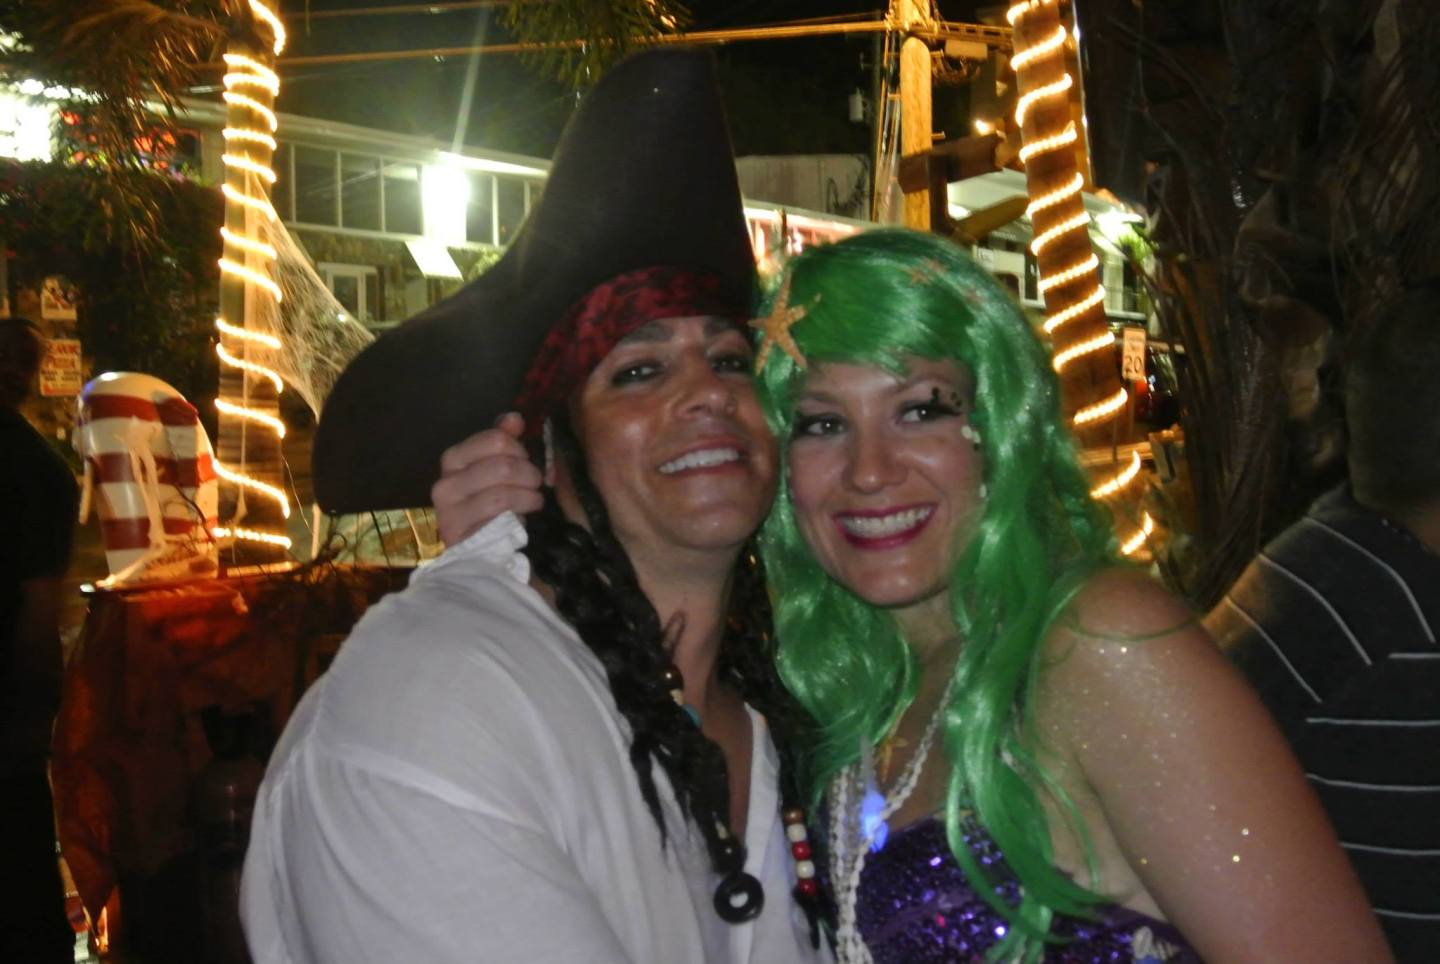 Pirate and Mermaid.jpg